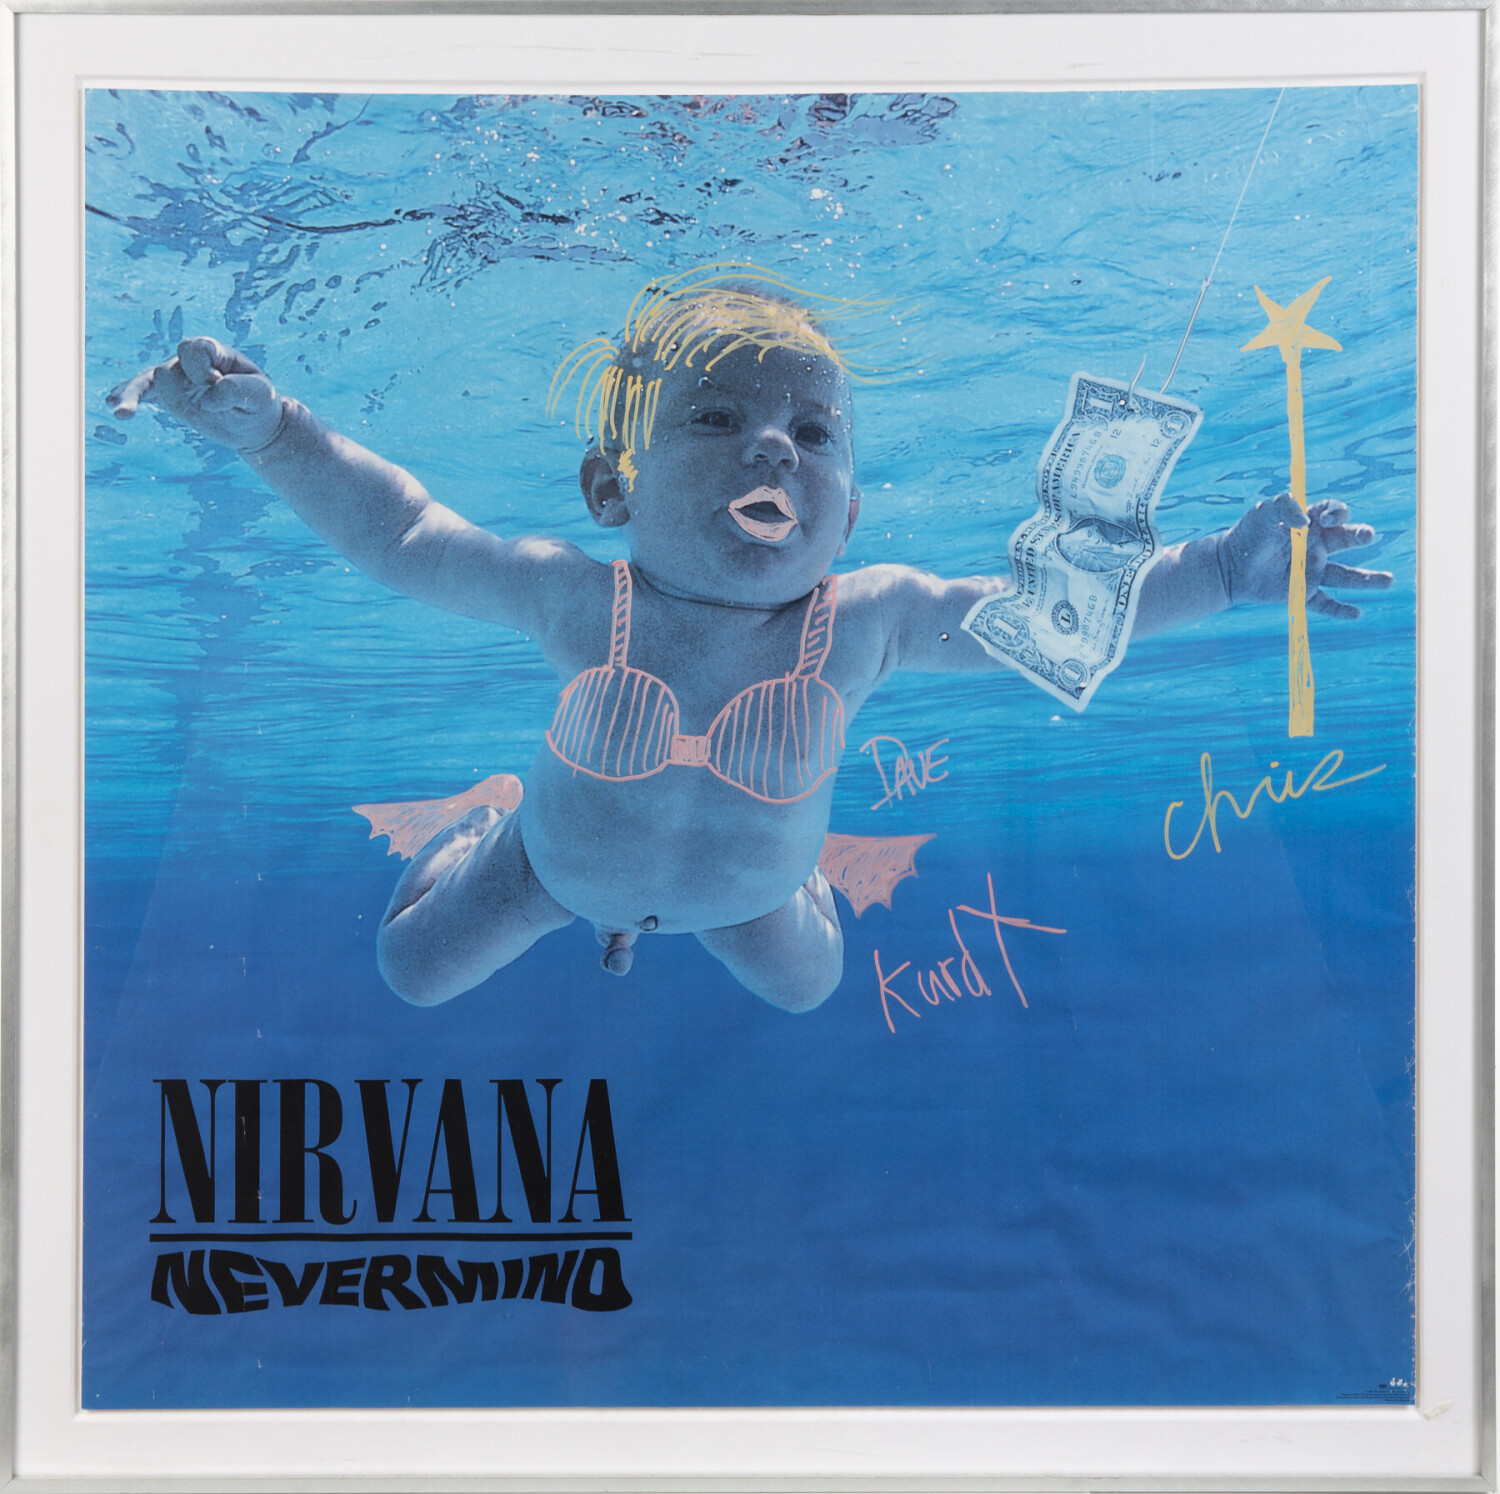 nirvana signed poster with drawings